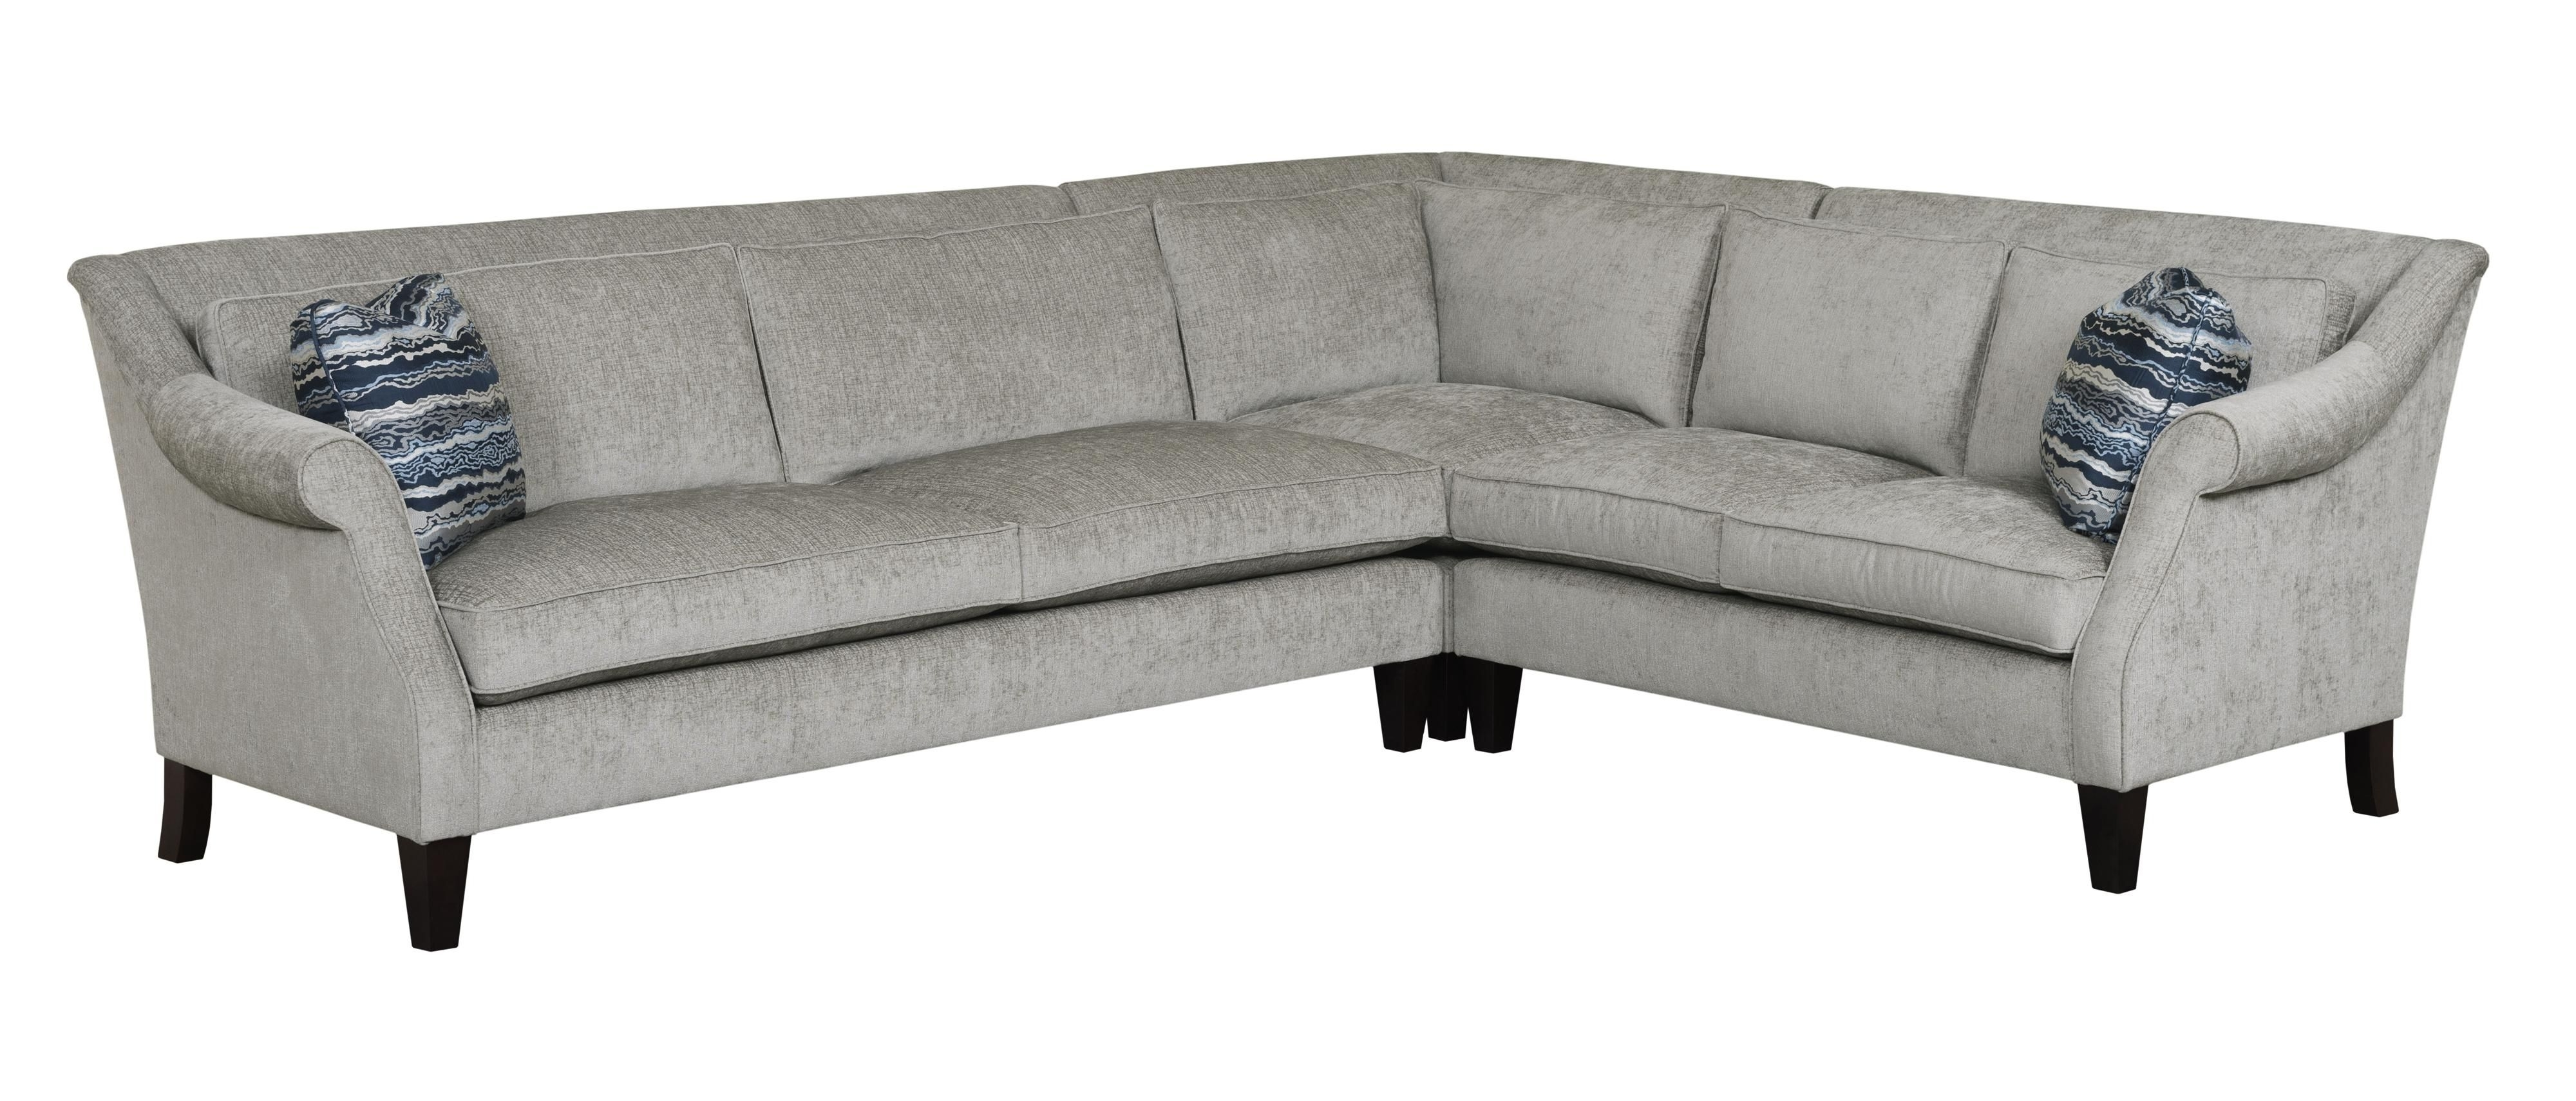 Classic Gray L Shaped Sectional Sofa Design Ideas For Living Room Within Most Recently Released Naples Fl Sectional Sofas (View 3 of 15)